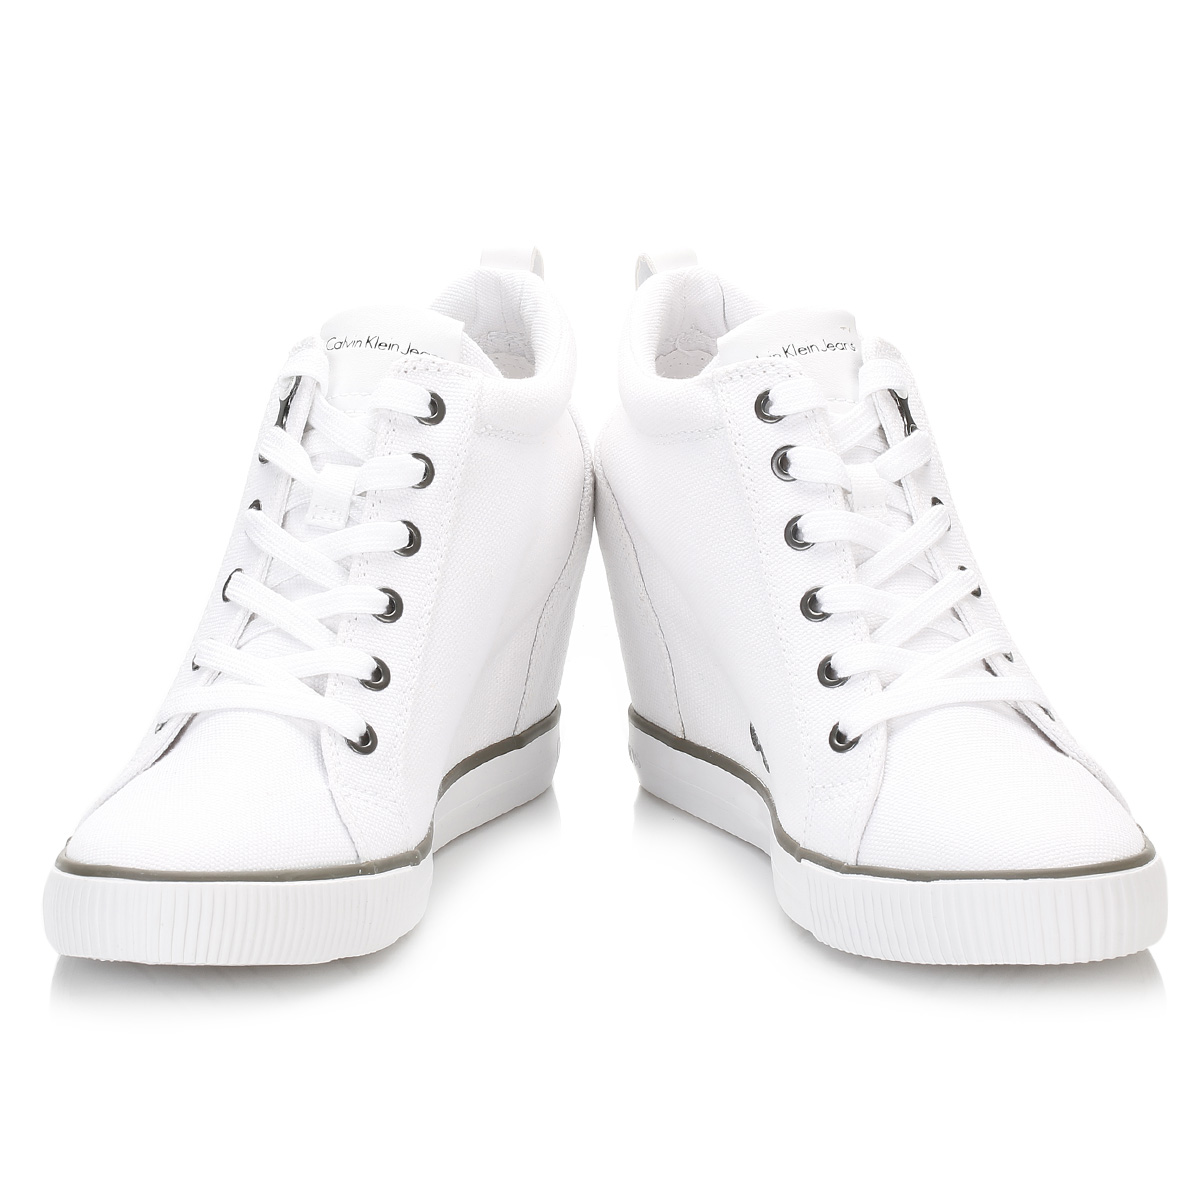 3feeb05a8d3 Calvin-Klein-Womens-Wedge-Trainers-Ritzy-White-or-